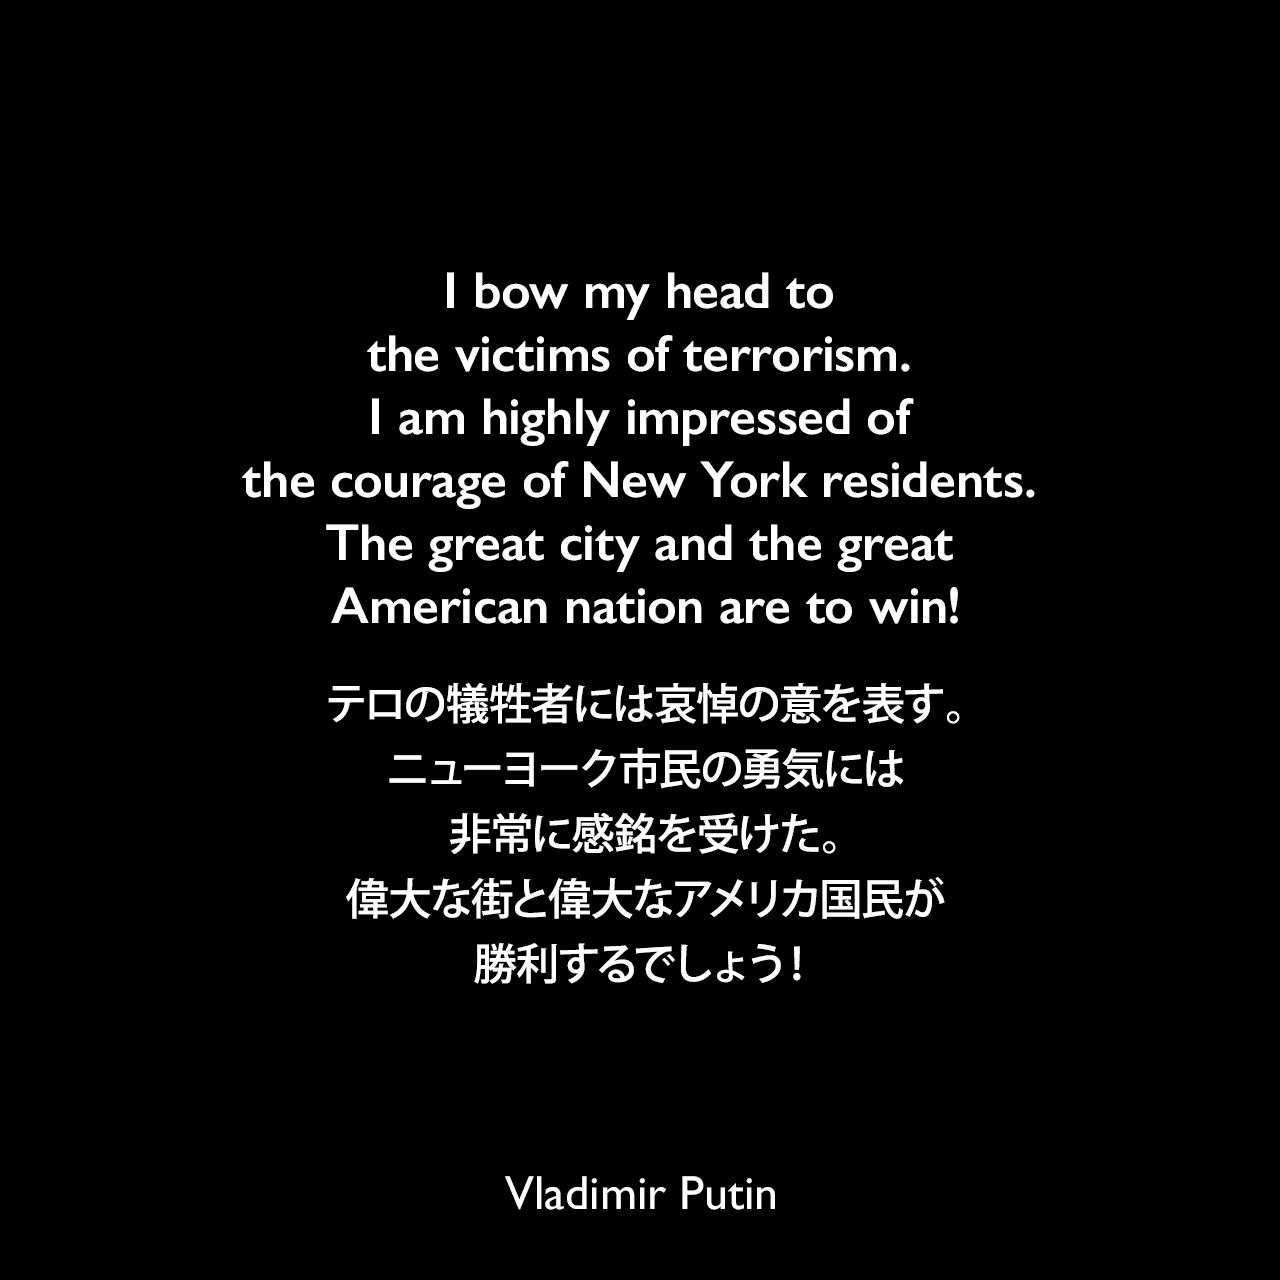 I bow my head to the victims of terrorism. I am highly impressed of the courage of New York residents. The great city and the great American nation are to win!テロの犠牲者には哀悼の意を表す。ニューヨーク市民の勇気には非常に感銘を受けた。偉大な街と偉大なアメリカ国民が勝利するでしょう!- 2011年11月15日、ワールドトレードセンターのメモリアルウォールの署名Vladimir Putin